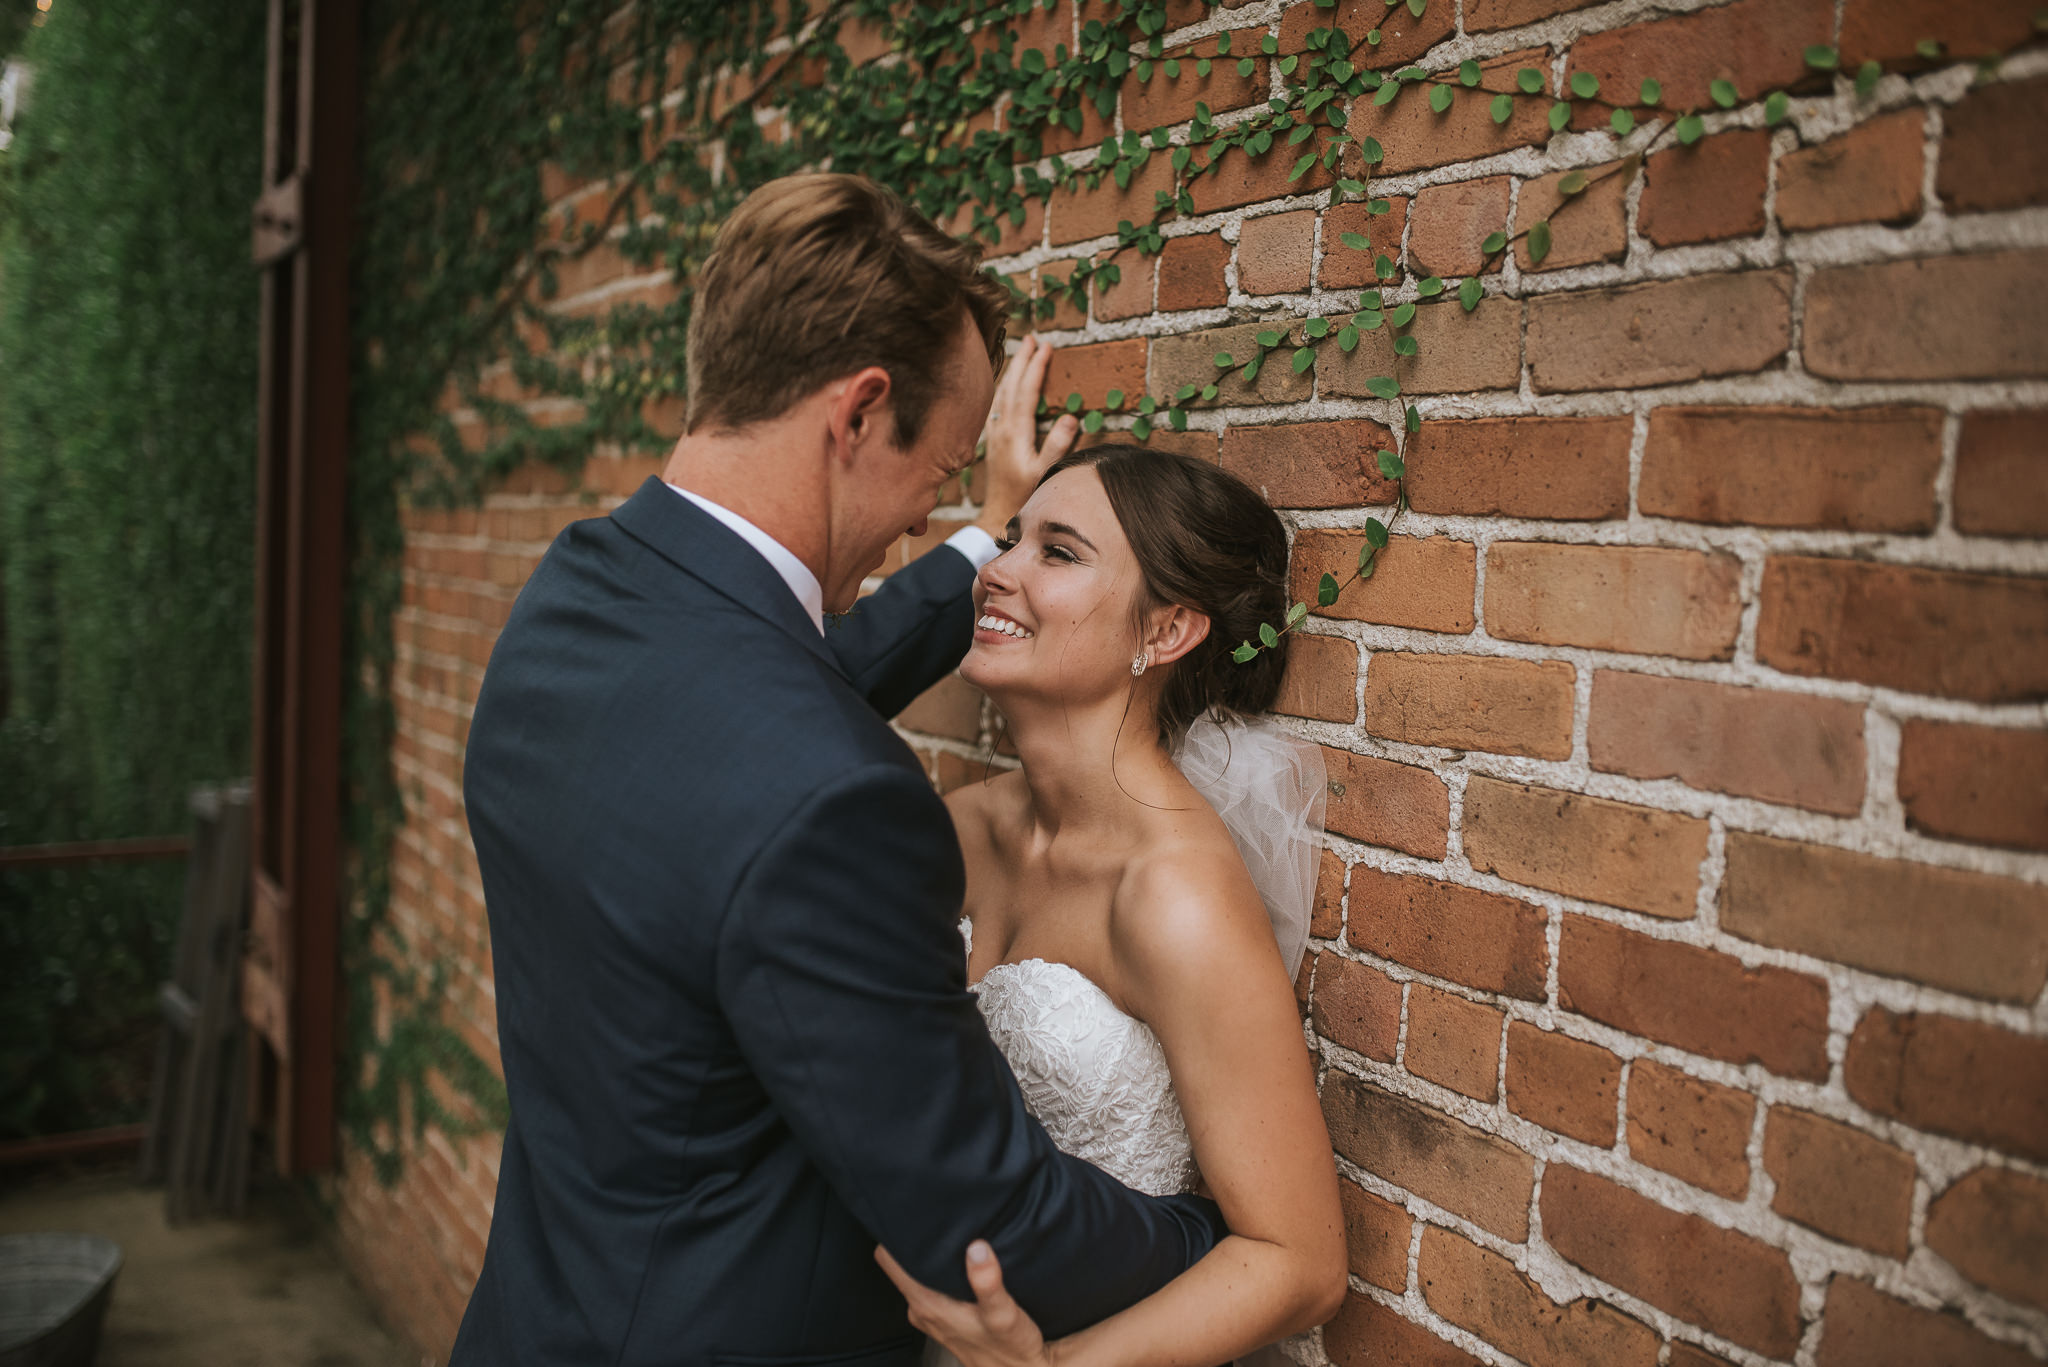 Click to view the whole Hattiesburg wedding!